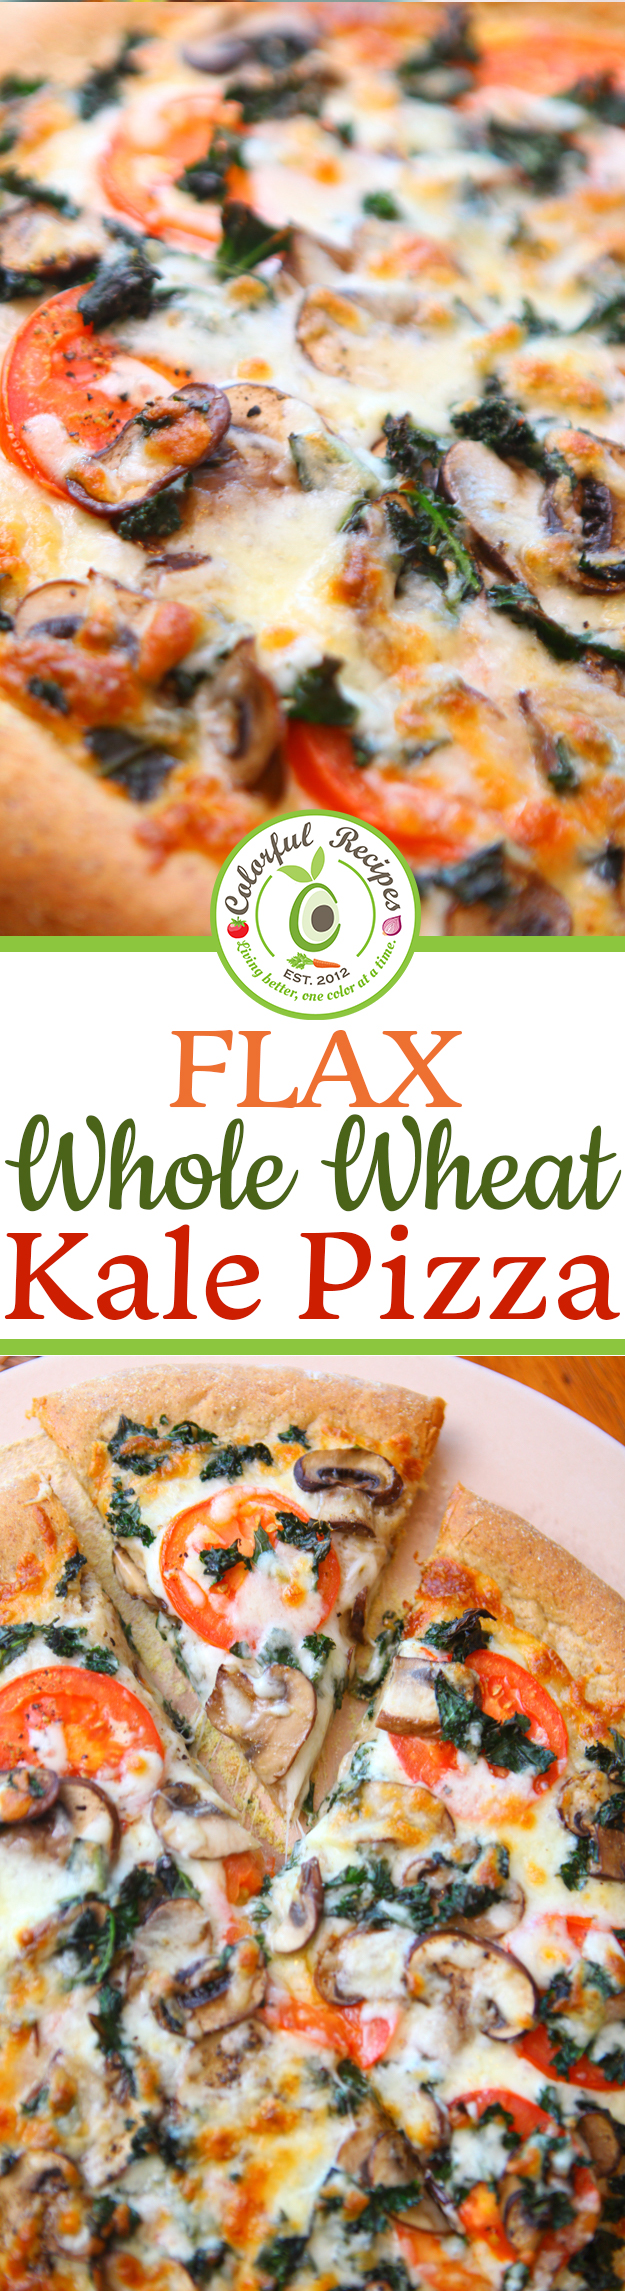 Flax Whole Wheat Kale Pizza with Mushrooms and Tomatoes